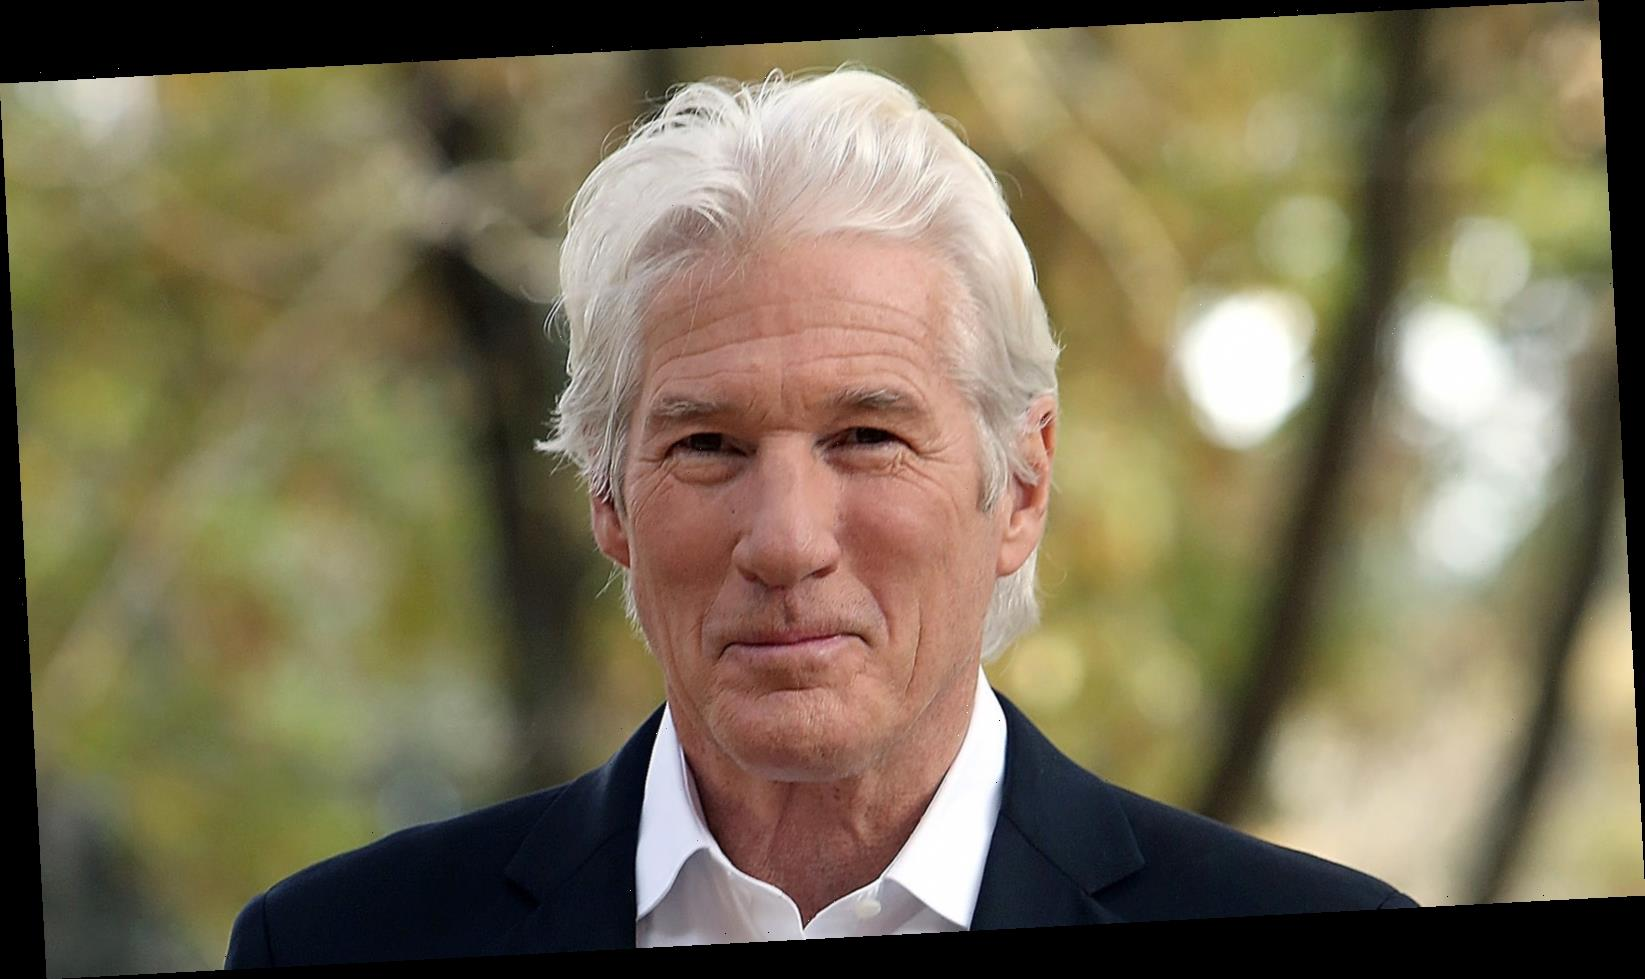 The reason Richard Gere was banned from the Oscars